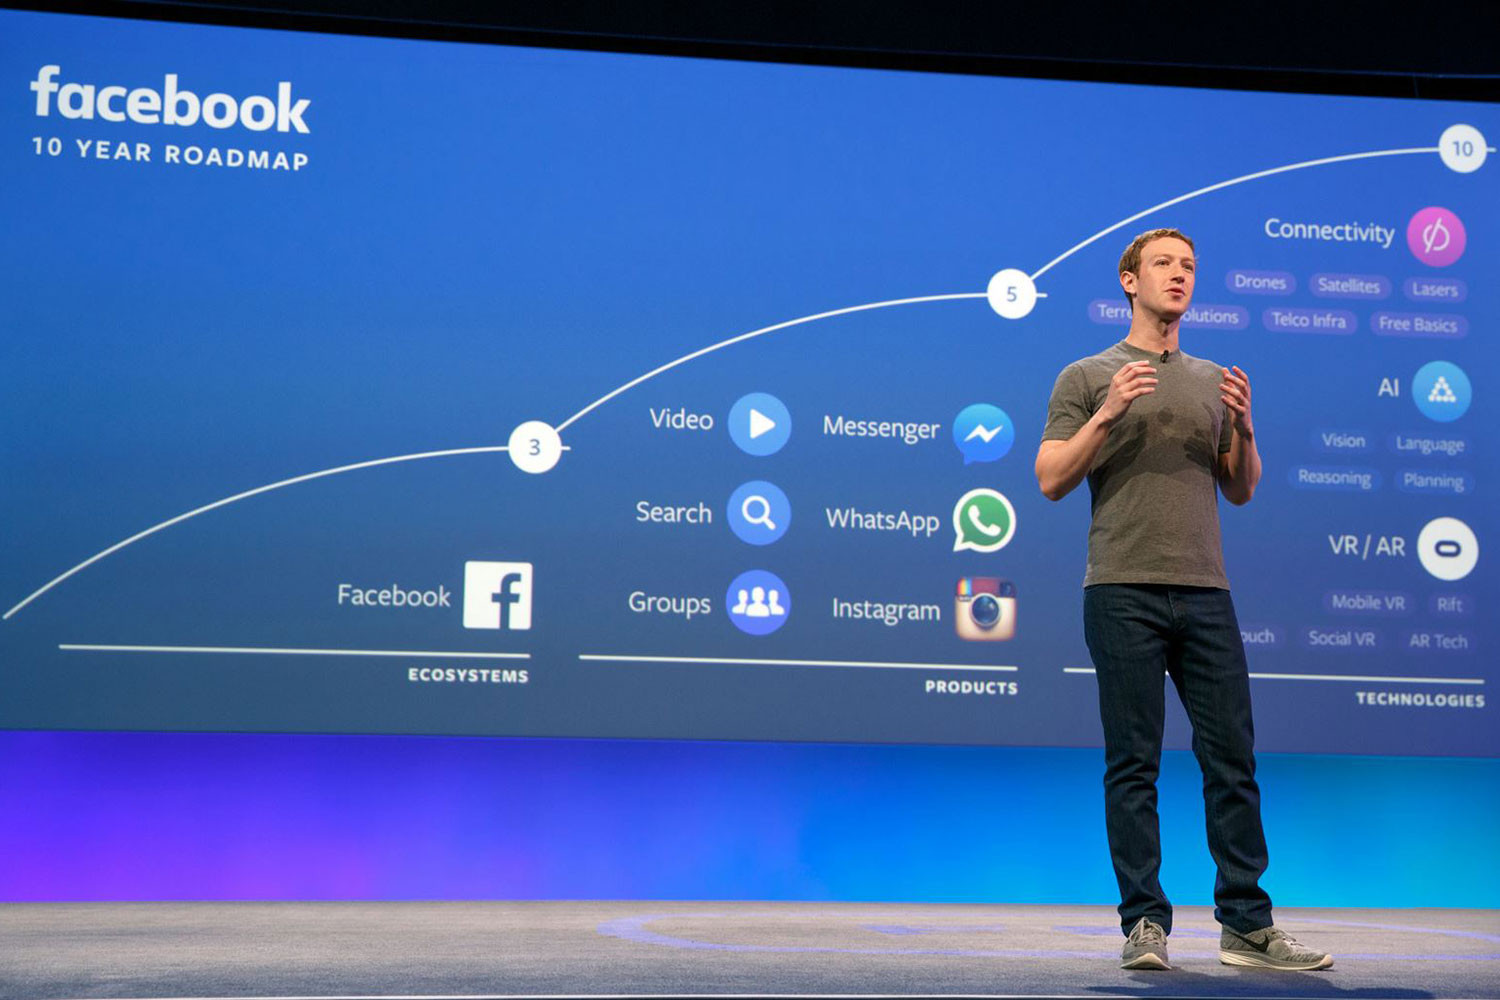 Influential or insignificant? What you need to know about Facebook's fake news dilemma